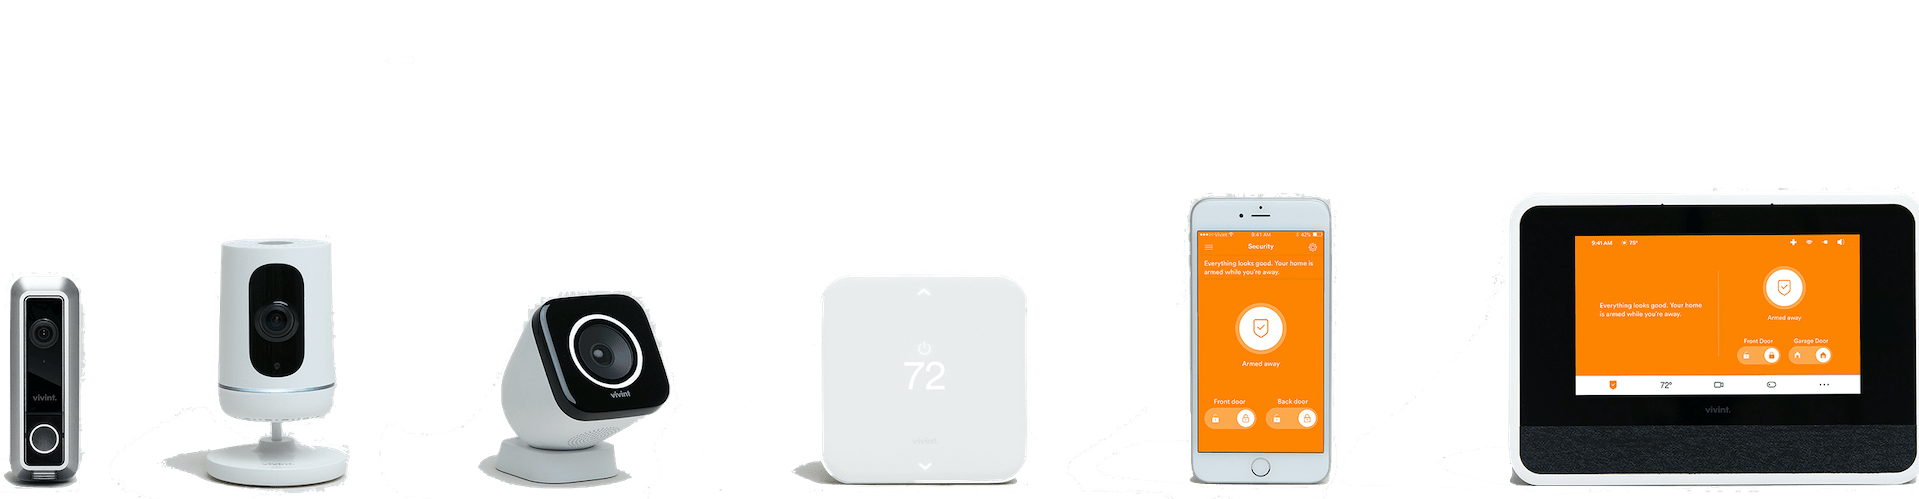 Vivint Smart Home Review Read About One Of Our Top Picks Of 2020